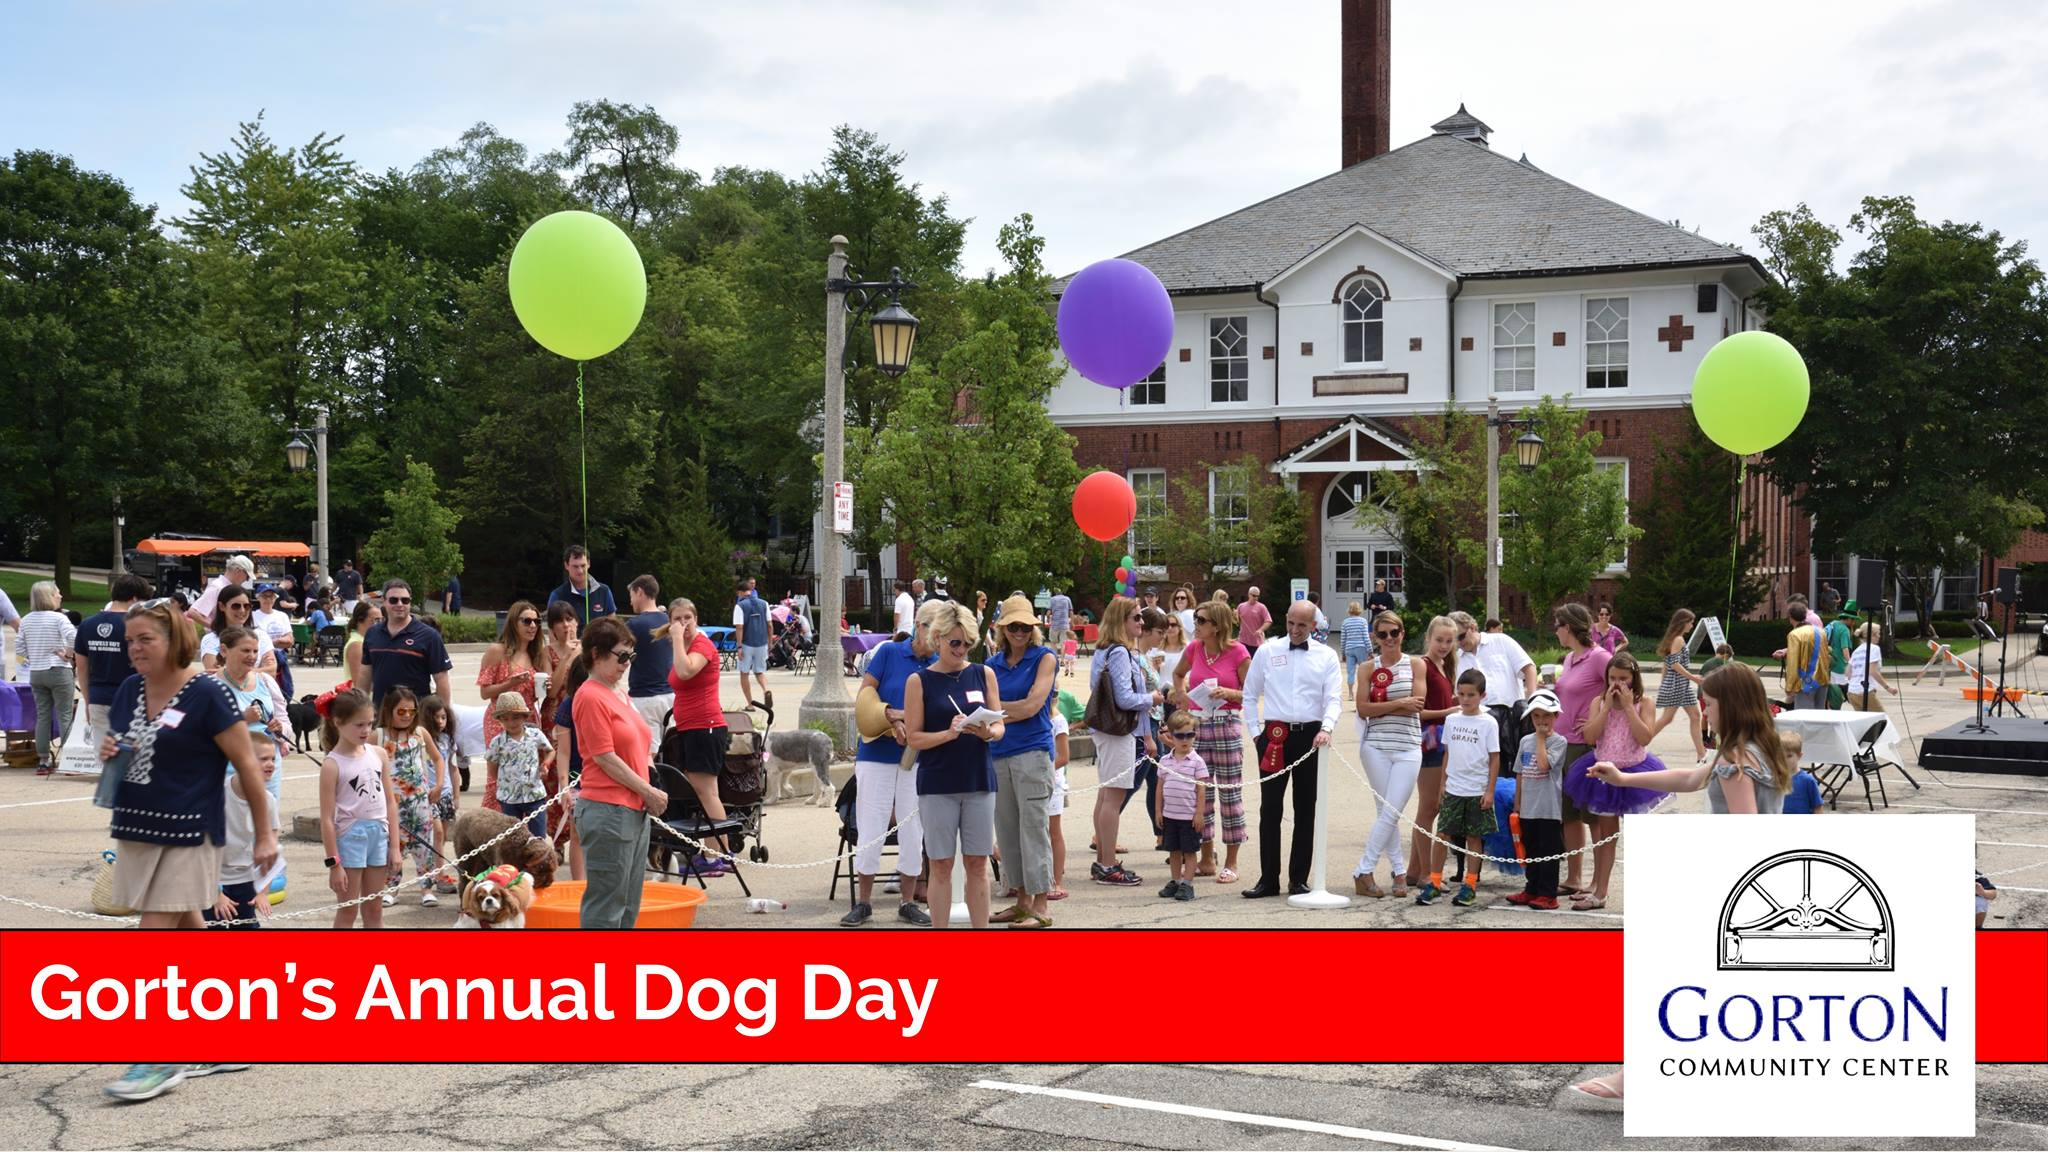 Gorton's Annual Dog Day